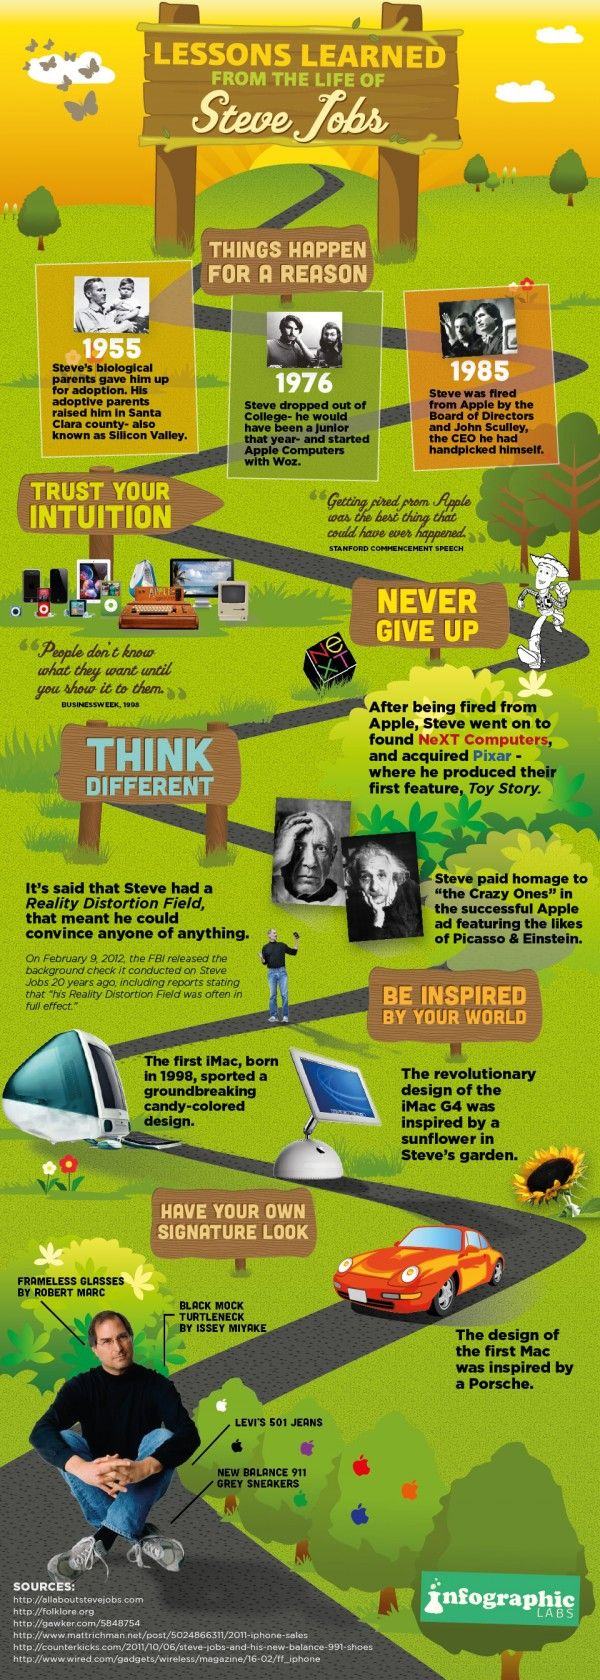 Lessons Learned From The Life of Steve Jobs